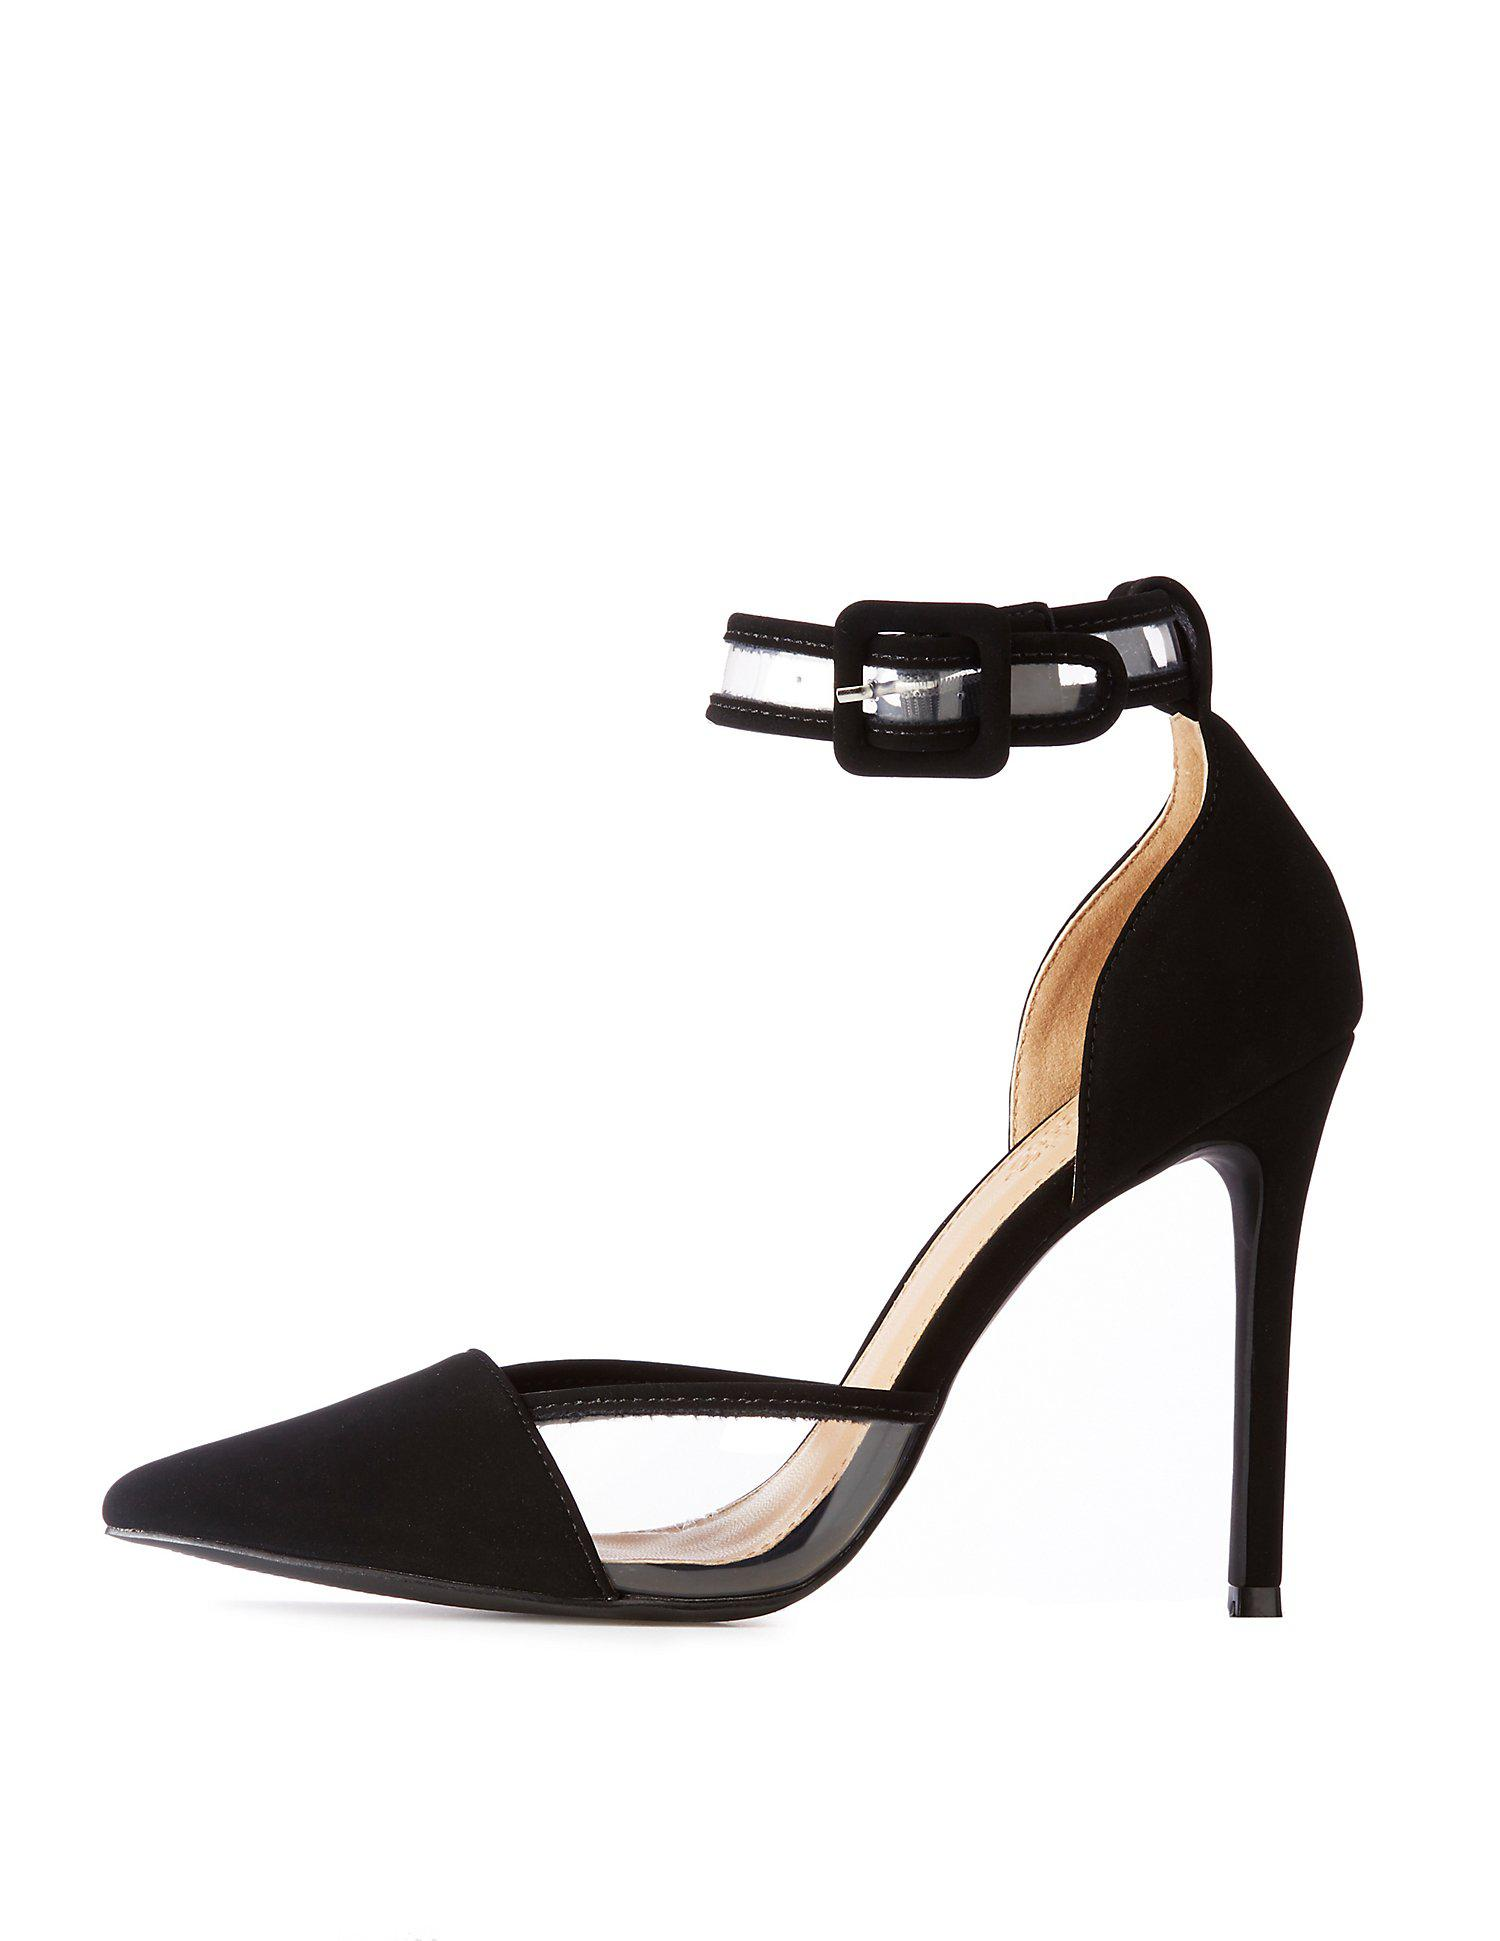 Lyst - Charlotte Russe Pointed Toe & Pvc-trim Stiletto Sandals in